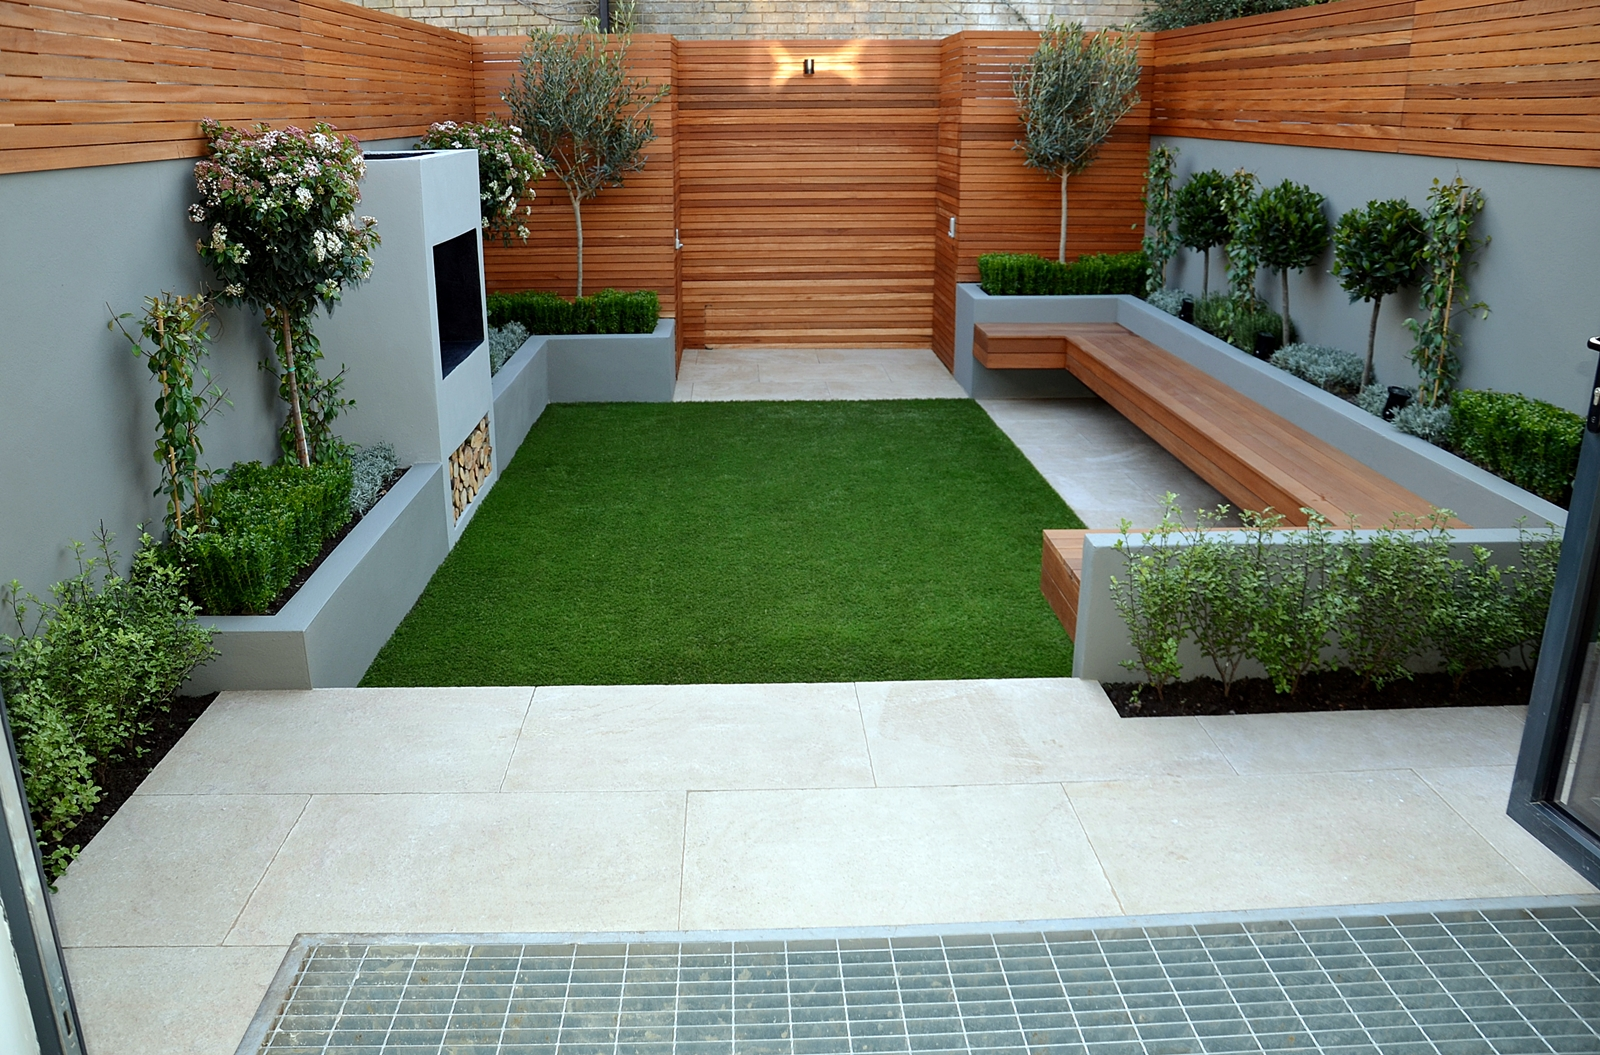 London Garden Design Decoration Modern Garden Designs For Small Gardens 5 Decoration Idea .